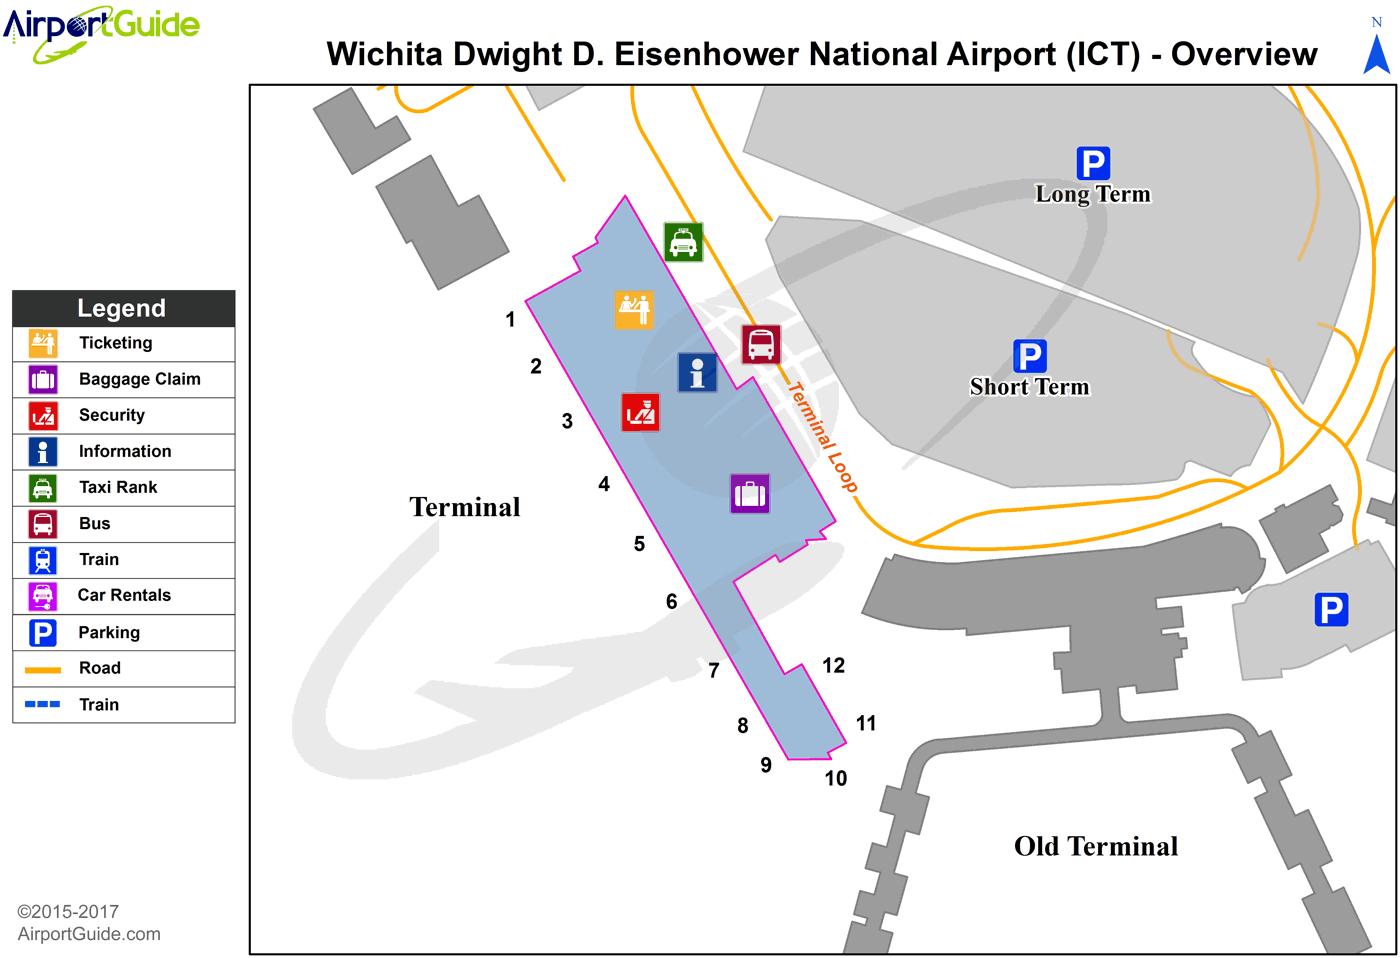 google printable maps with Wichita Dwight D Eisenhower National Ict Airport Terminal Map on Details in addition 11 5 Oceania as well Midtown Detroit Boom Keeps On Rolling as well 526076800209526391 furthermore Design Graphic Mapping Handbook Trees Species Educational Plate.